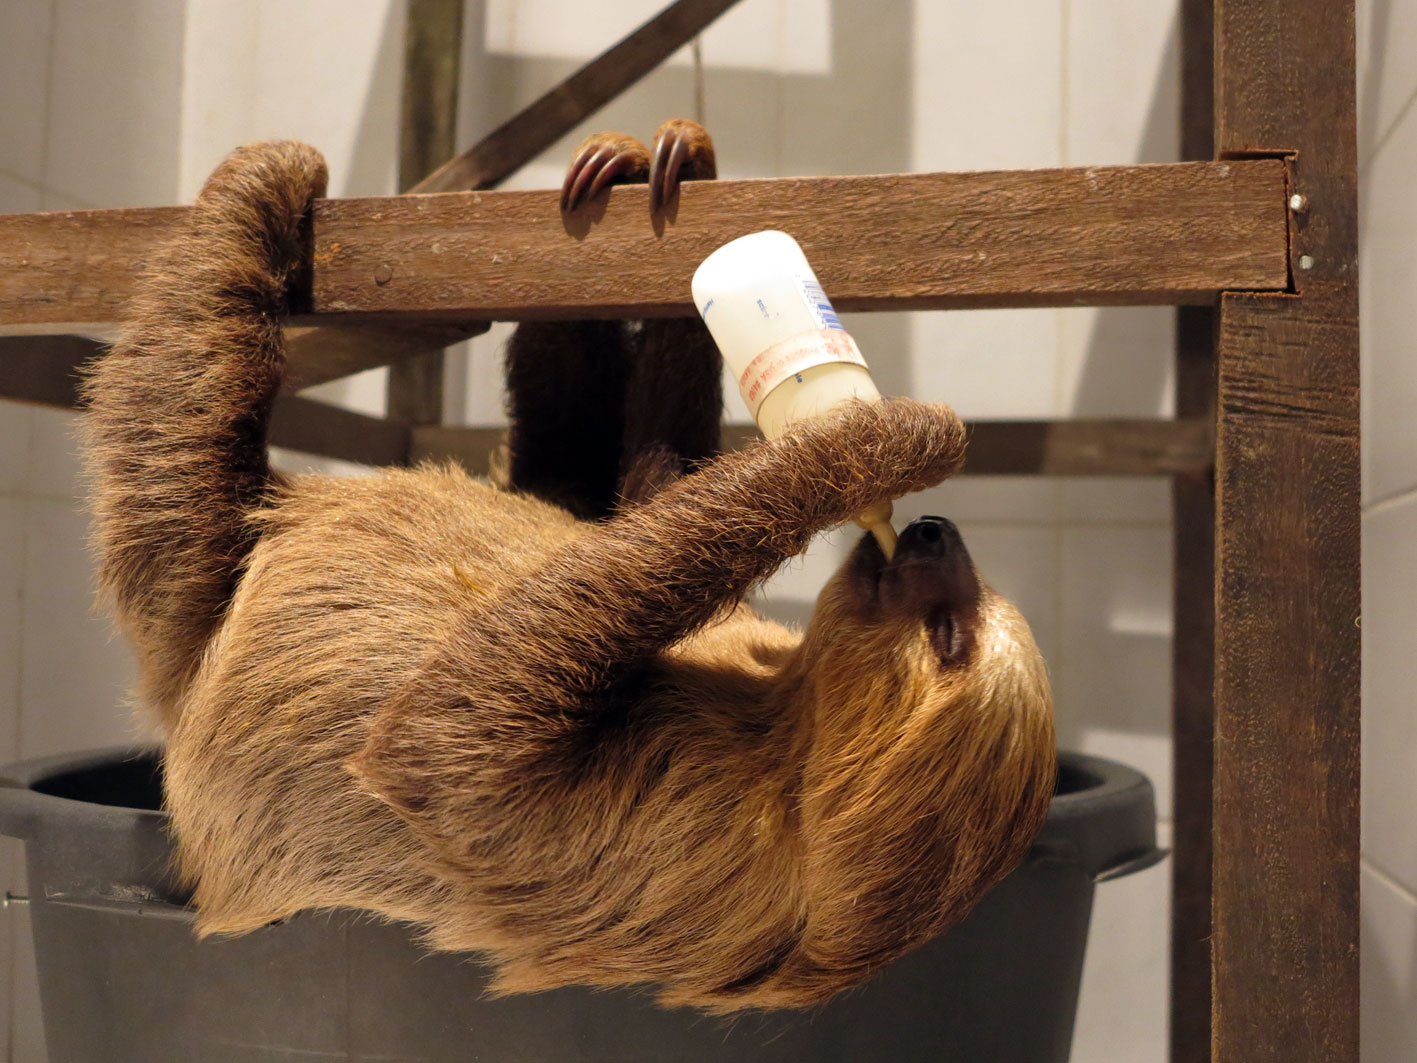 Help a sloth like this guy!